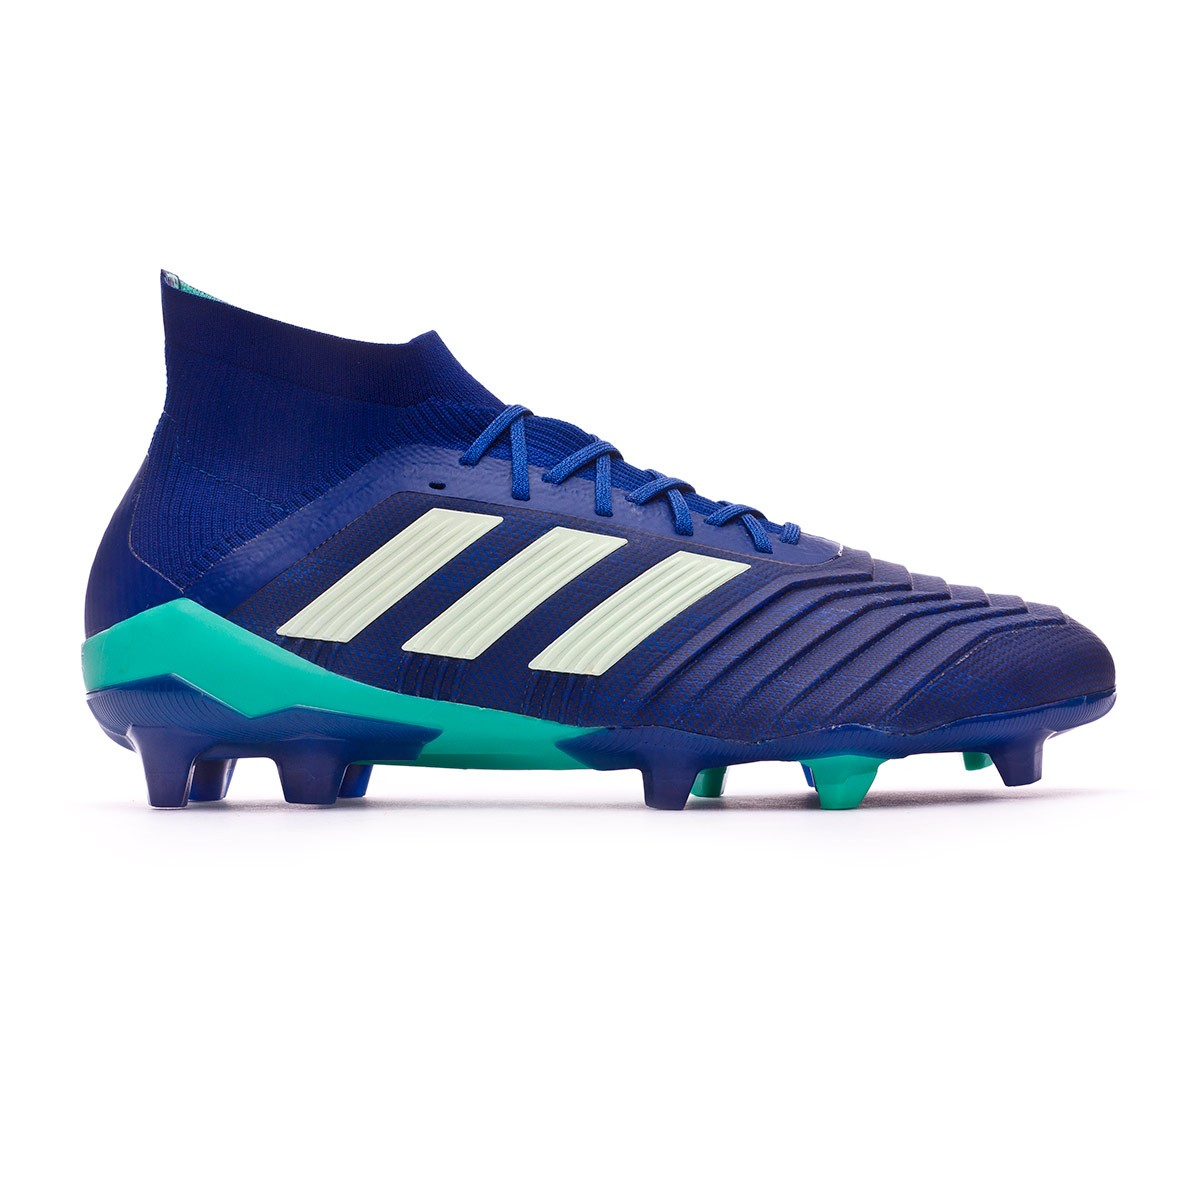 27f15268c Football Boots adidas Predator 18.1 FG Unity ink-Aero green-Hi-res green -  Football store Fútbol Emotion